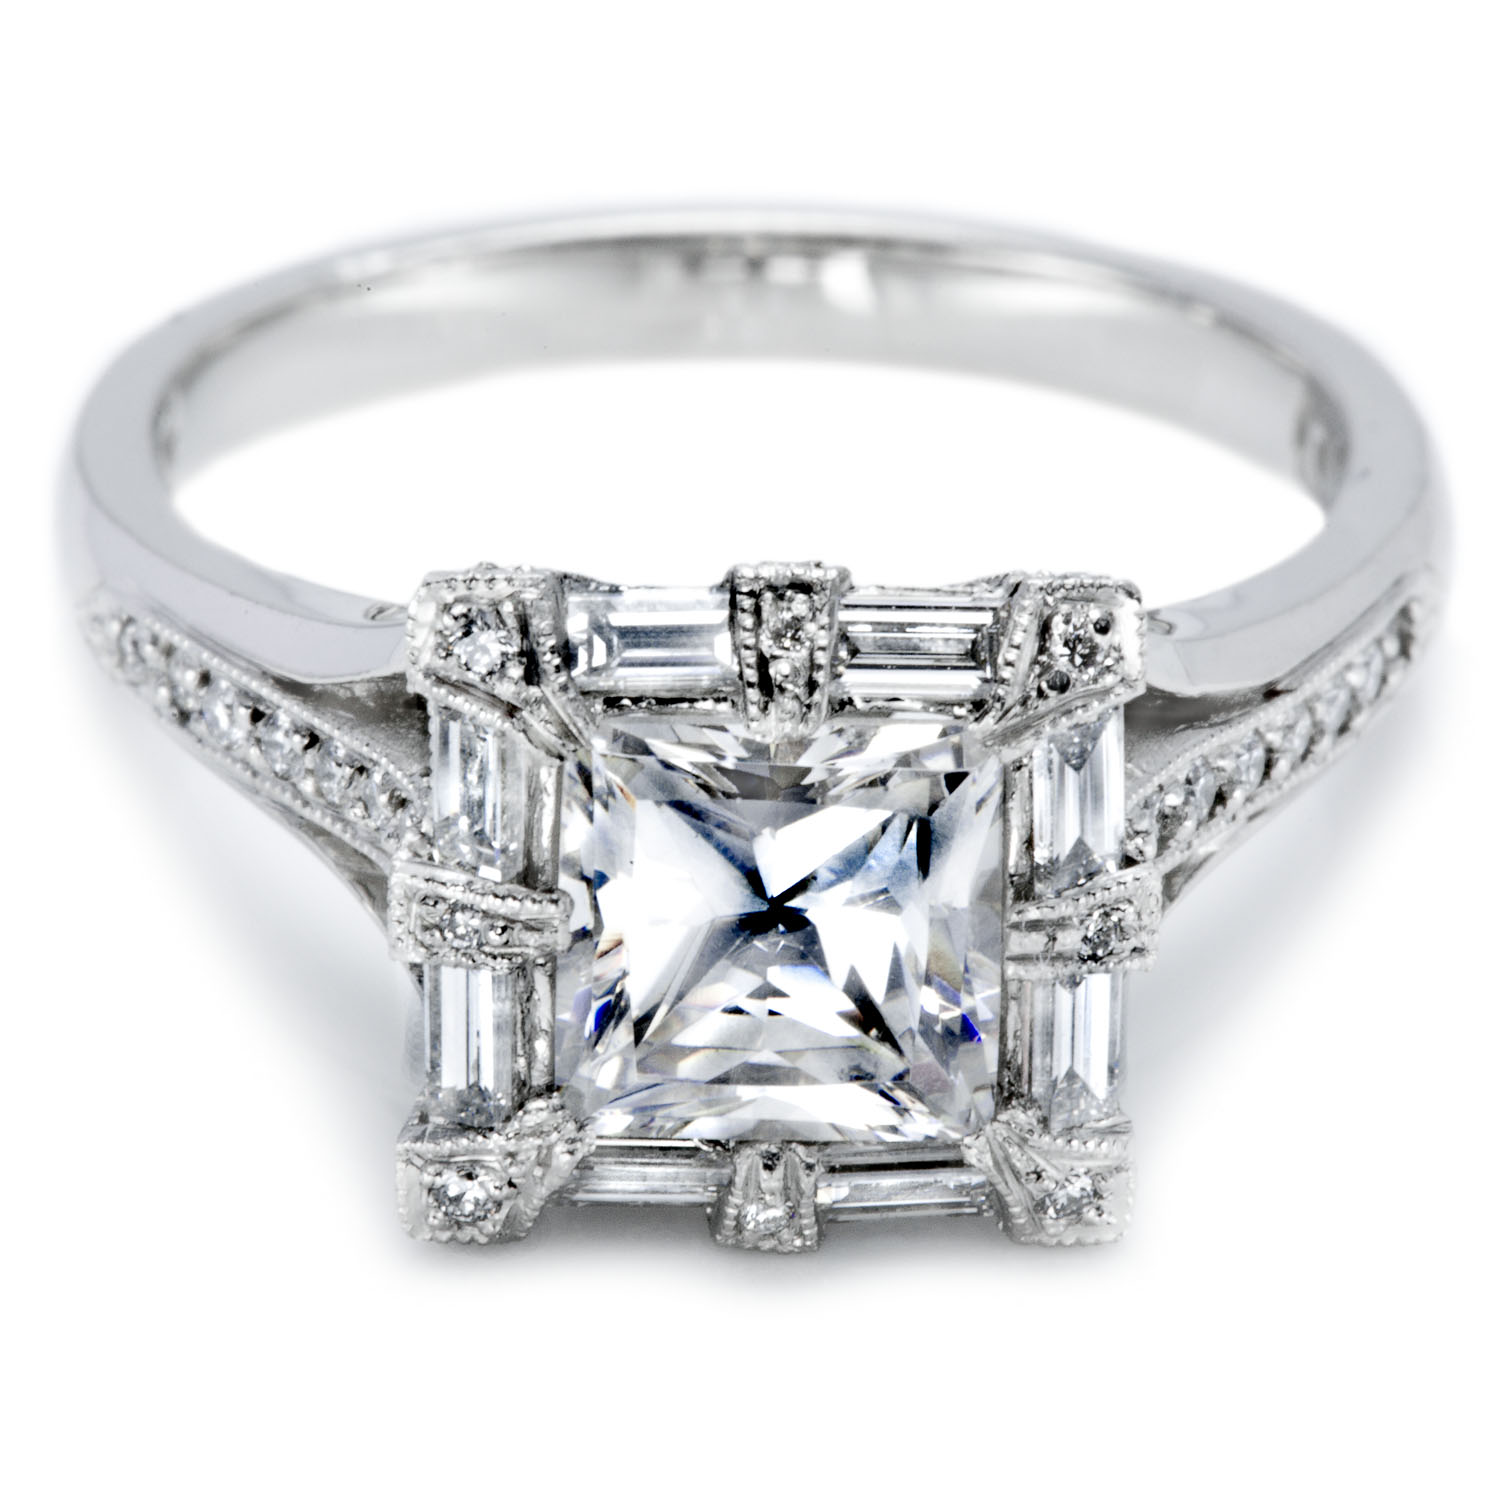 Tacori inspired engagement rings as one of the best rings Ring Review